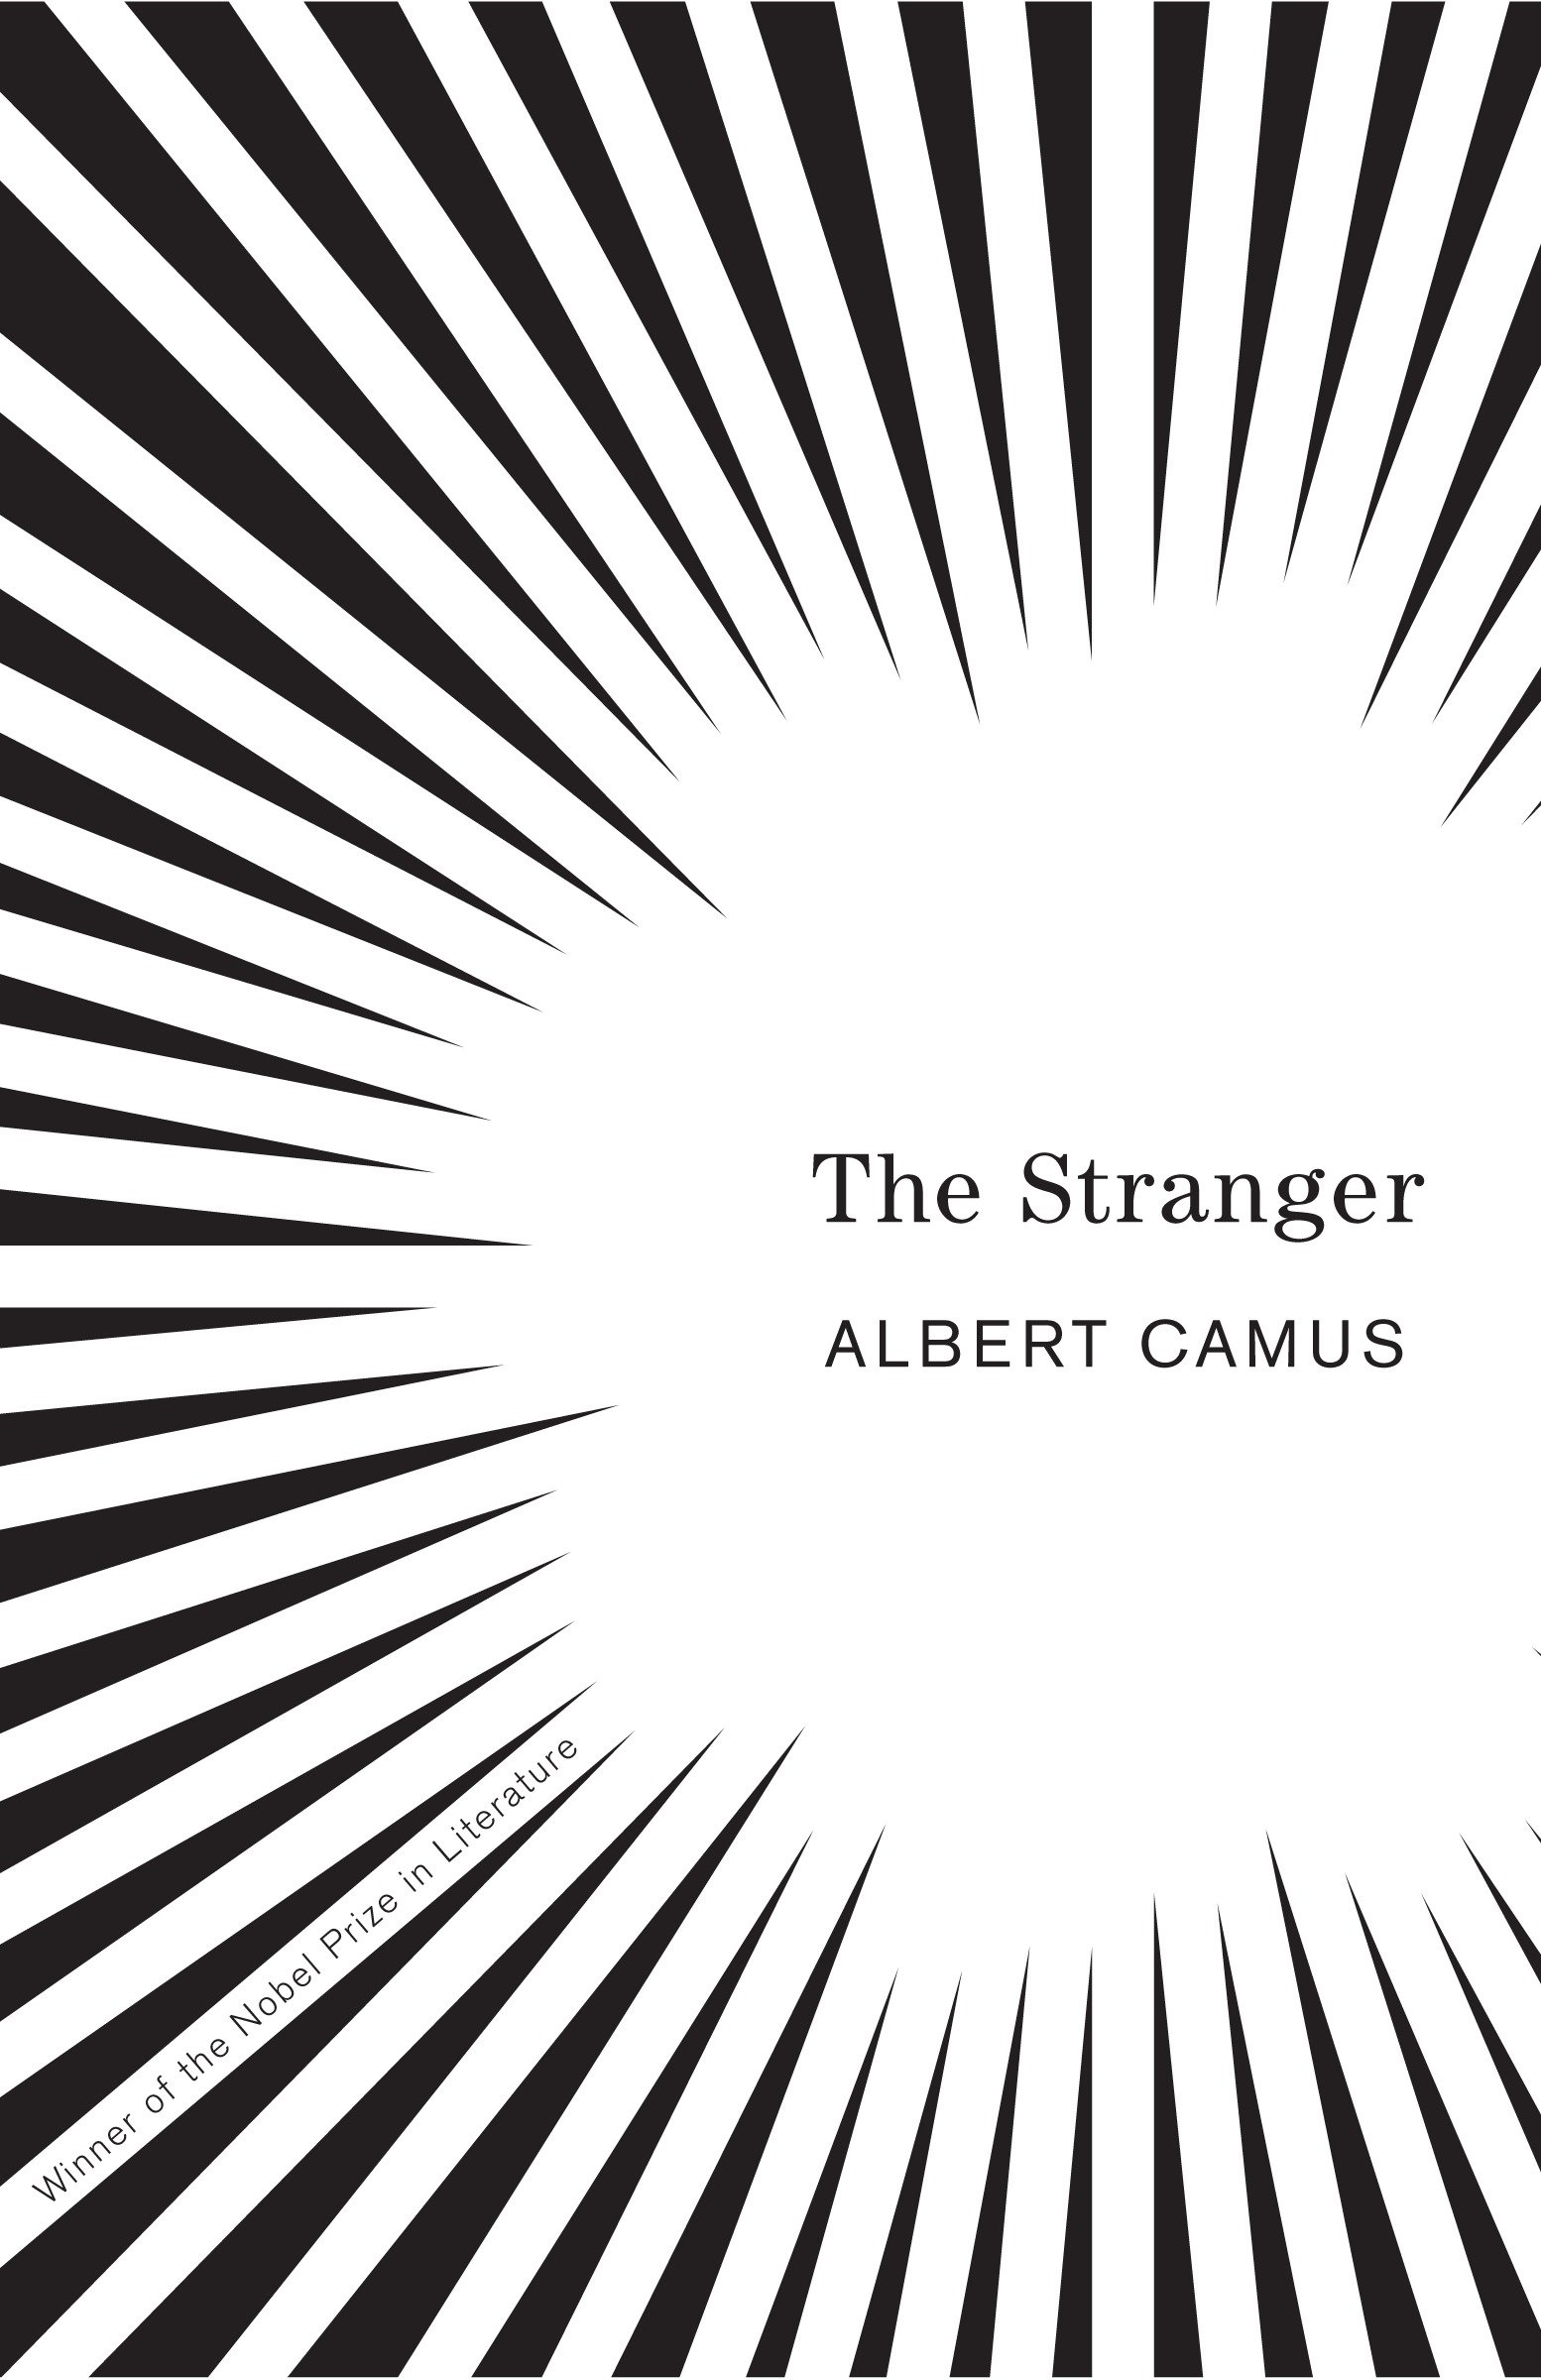 The Book of the Outsider, Albert Camus: a summary 68